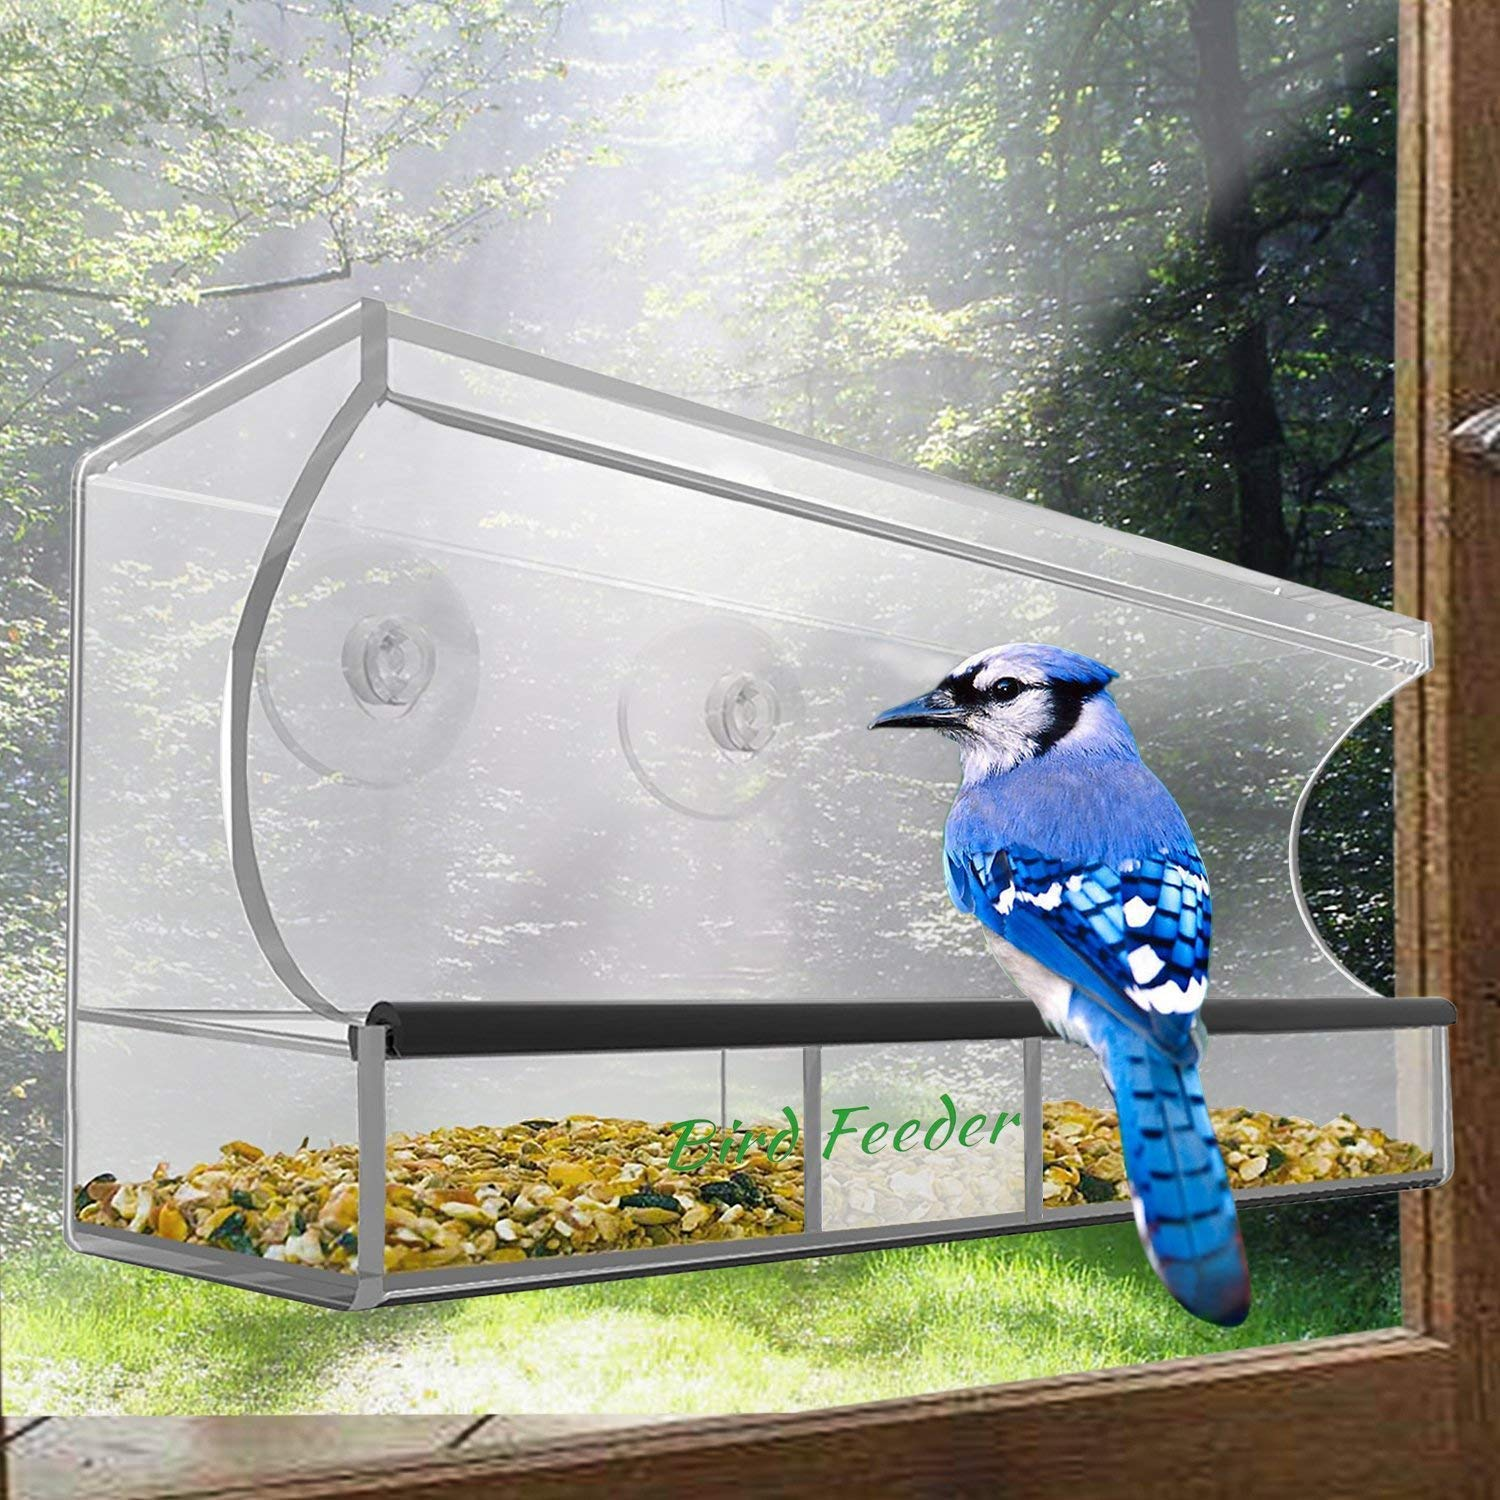 Bird Feeder, Window Bird House Crystal Clear Acrylic with Removable Tray, Drain Holes and 3 Heavy Duty Suction Cups with Hooks, Weatherproof Design, Squirrel Resistant, Drains Rain Water AnnBay